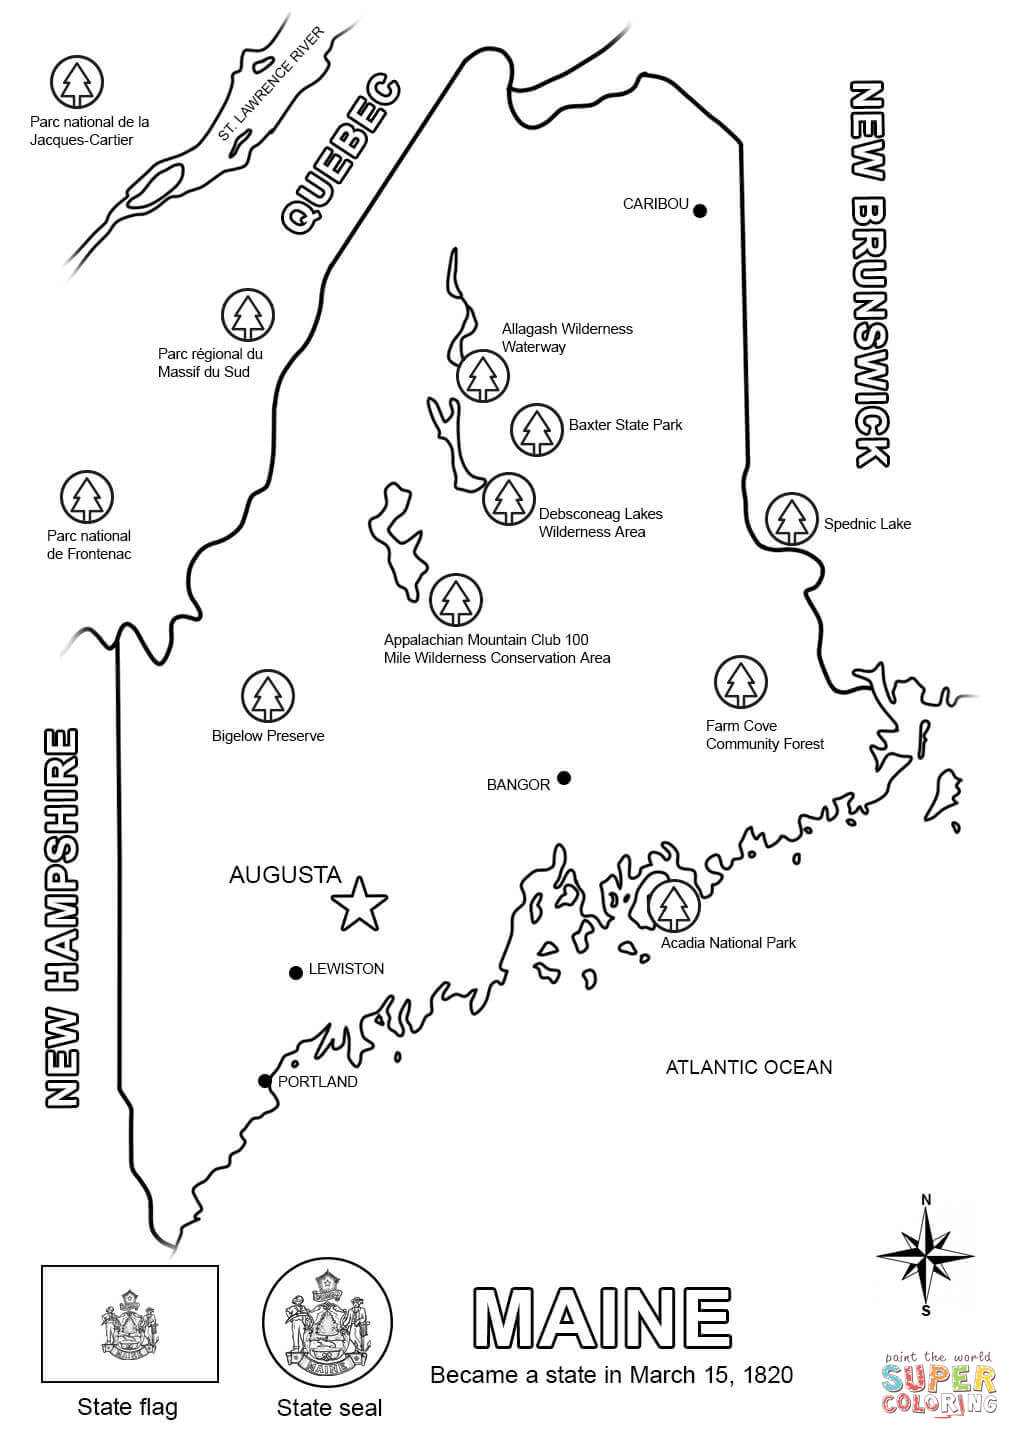 maine coloring pages maine state flag coloring page awesome maine flag coloring coloring pages maine